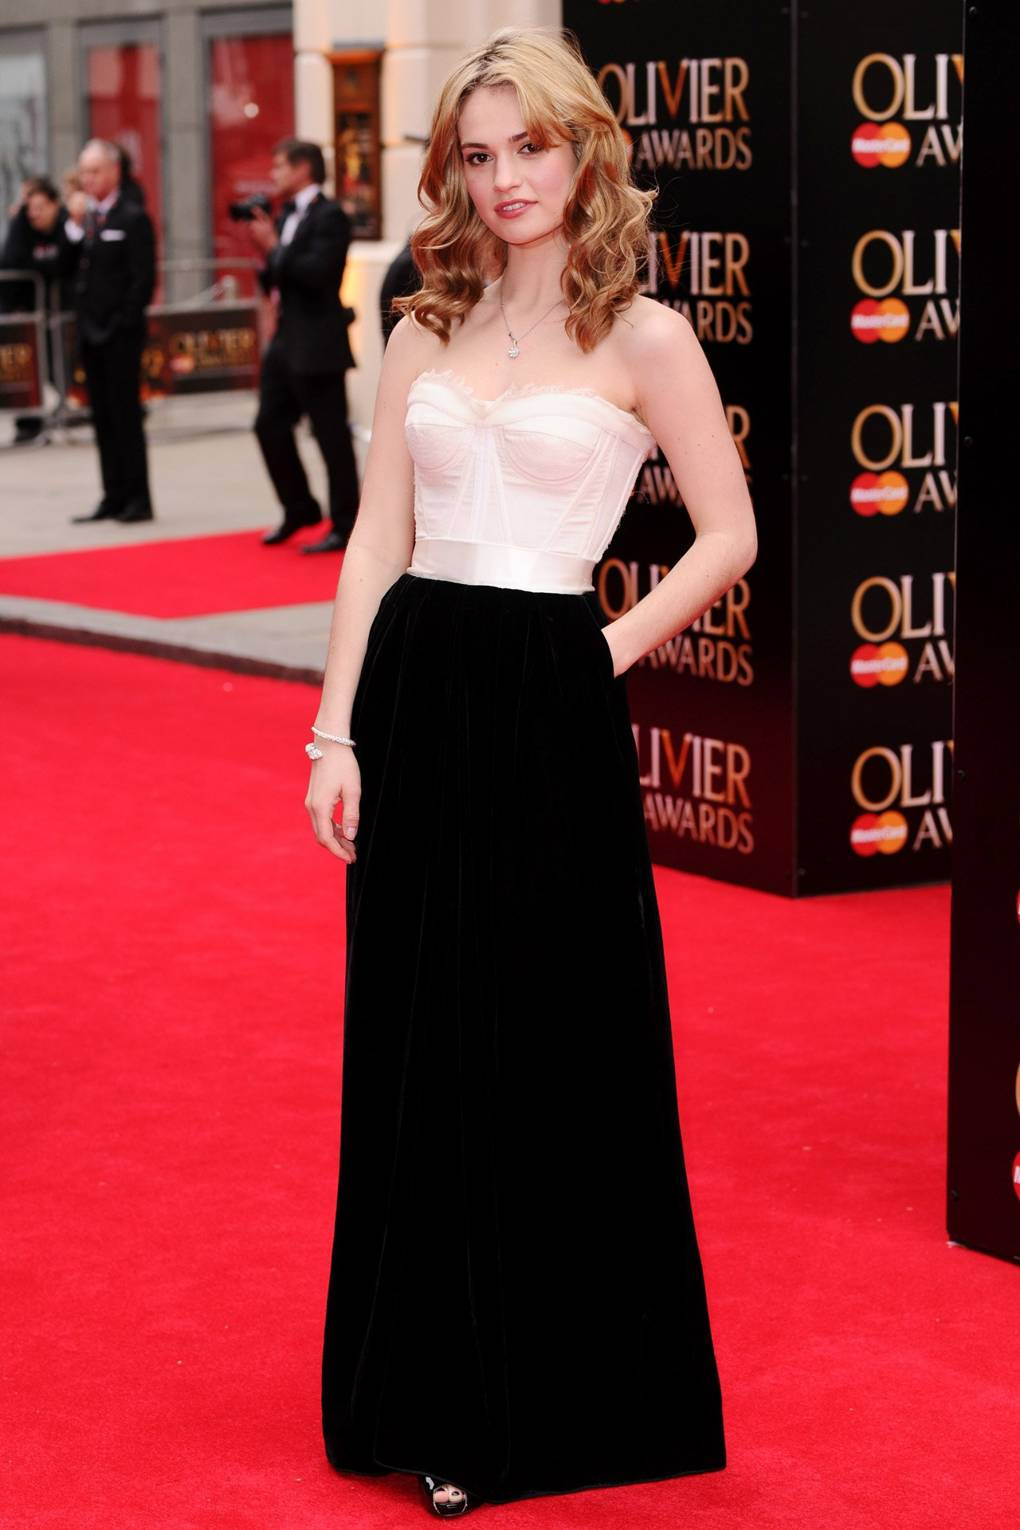 fa84d6c7bb7b lily james red carpet style cinderella street outfits clothes; GLAMOUR.com  (UK) | Glamour UK